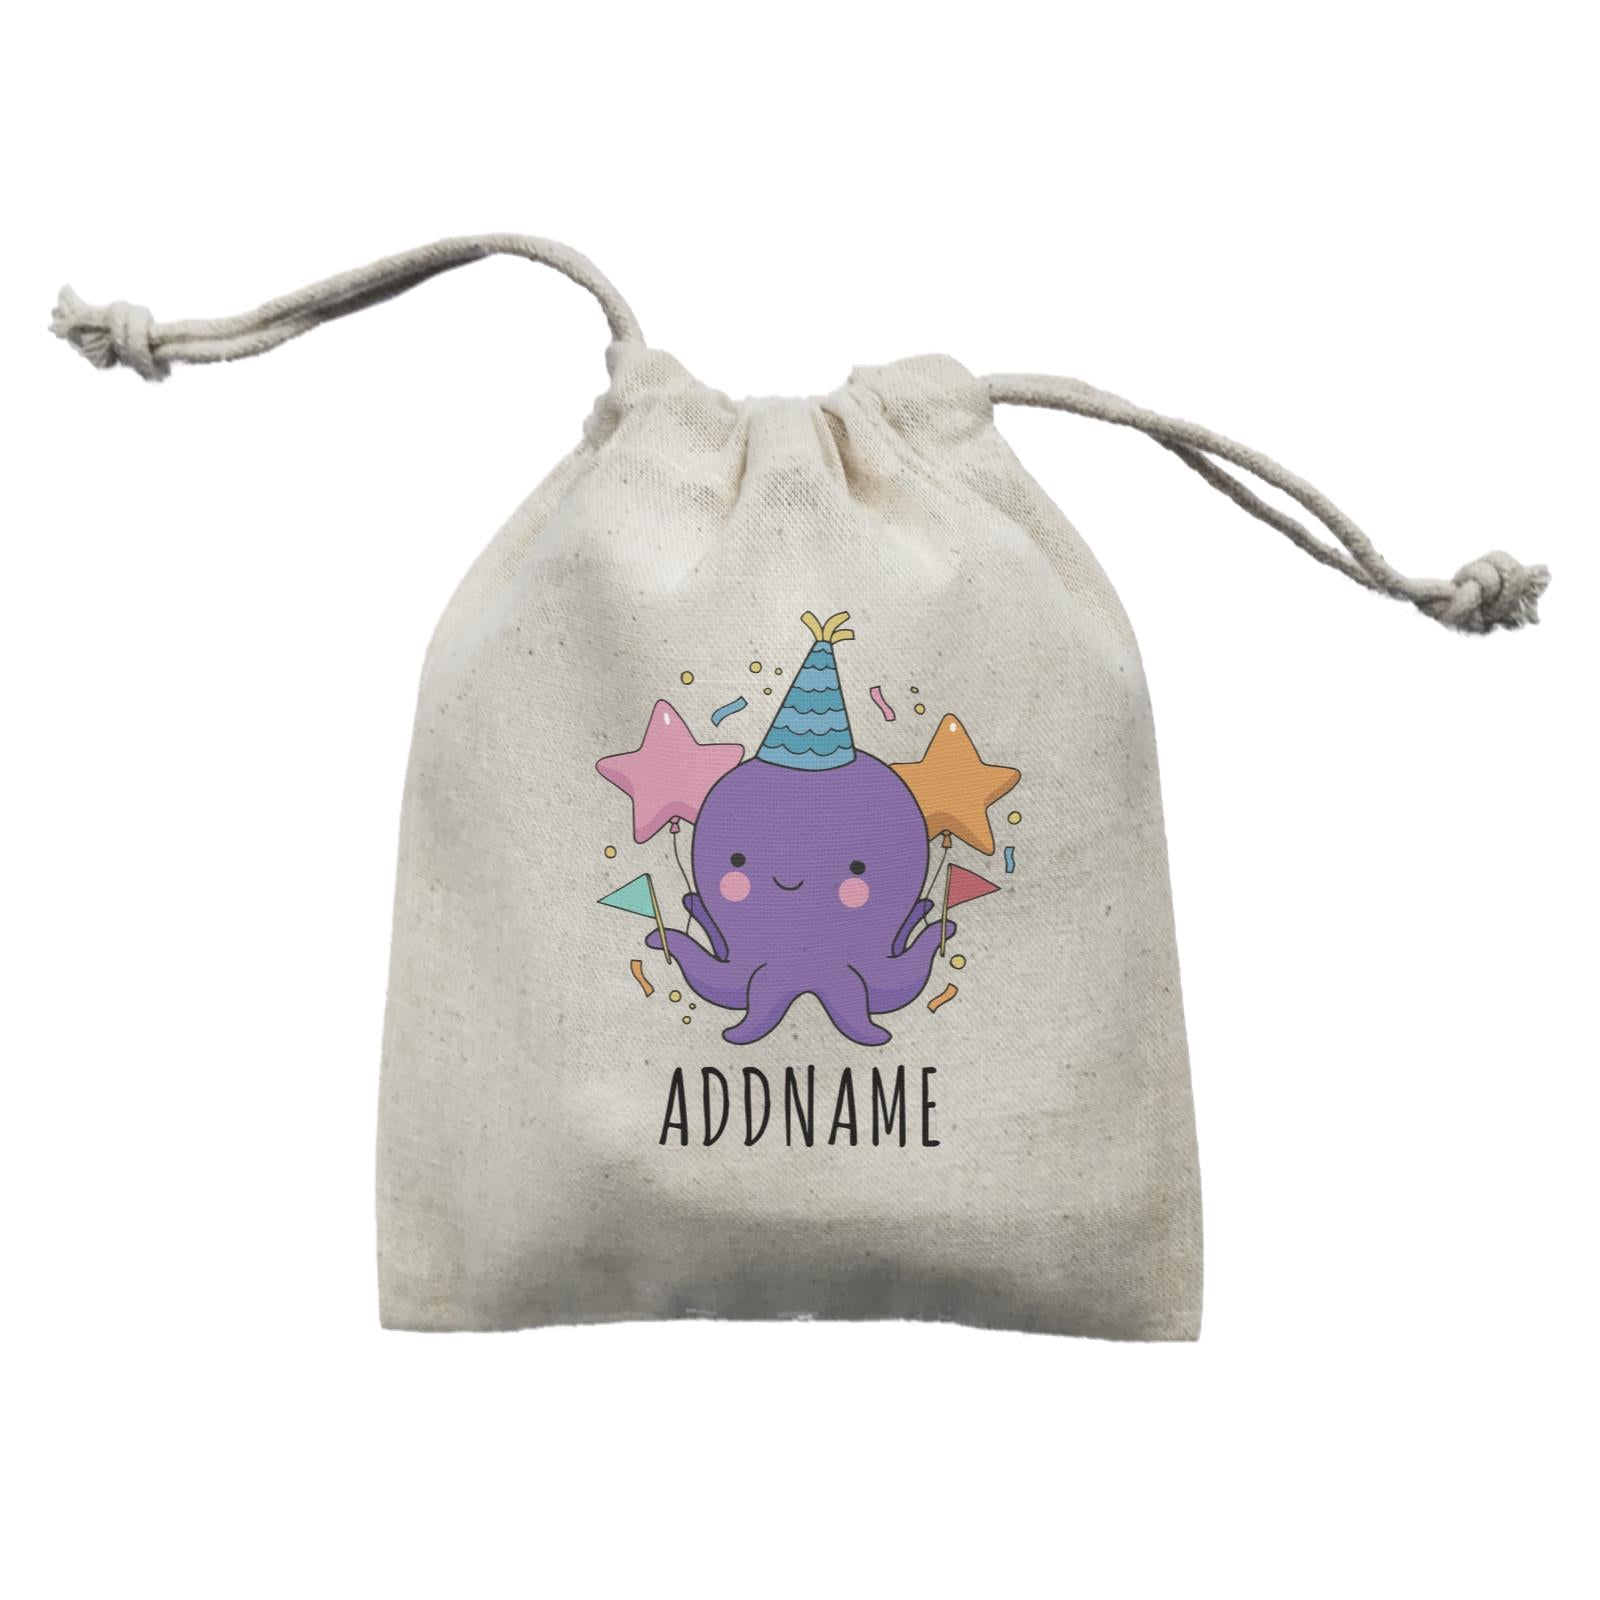 Birthday Sketch Animals Octopus with Flags Addname Mini Accessories Mini Pouch